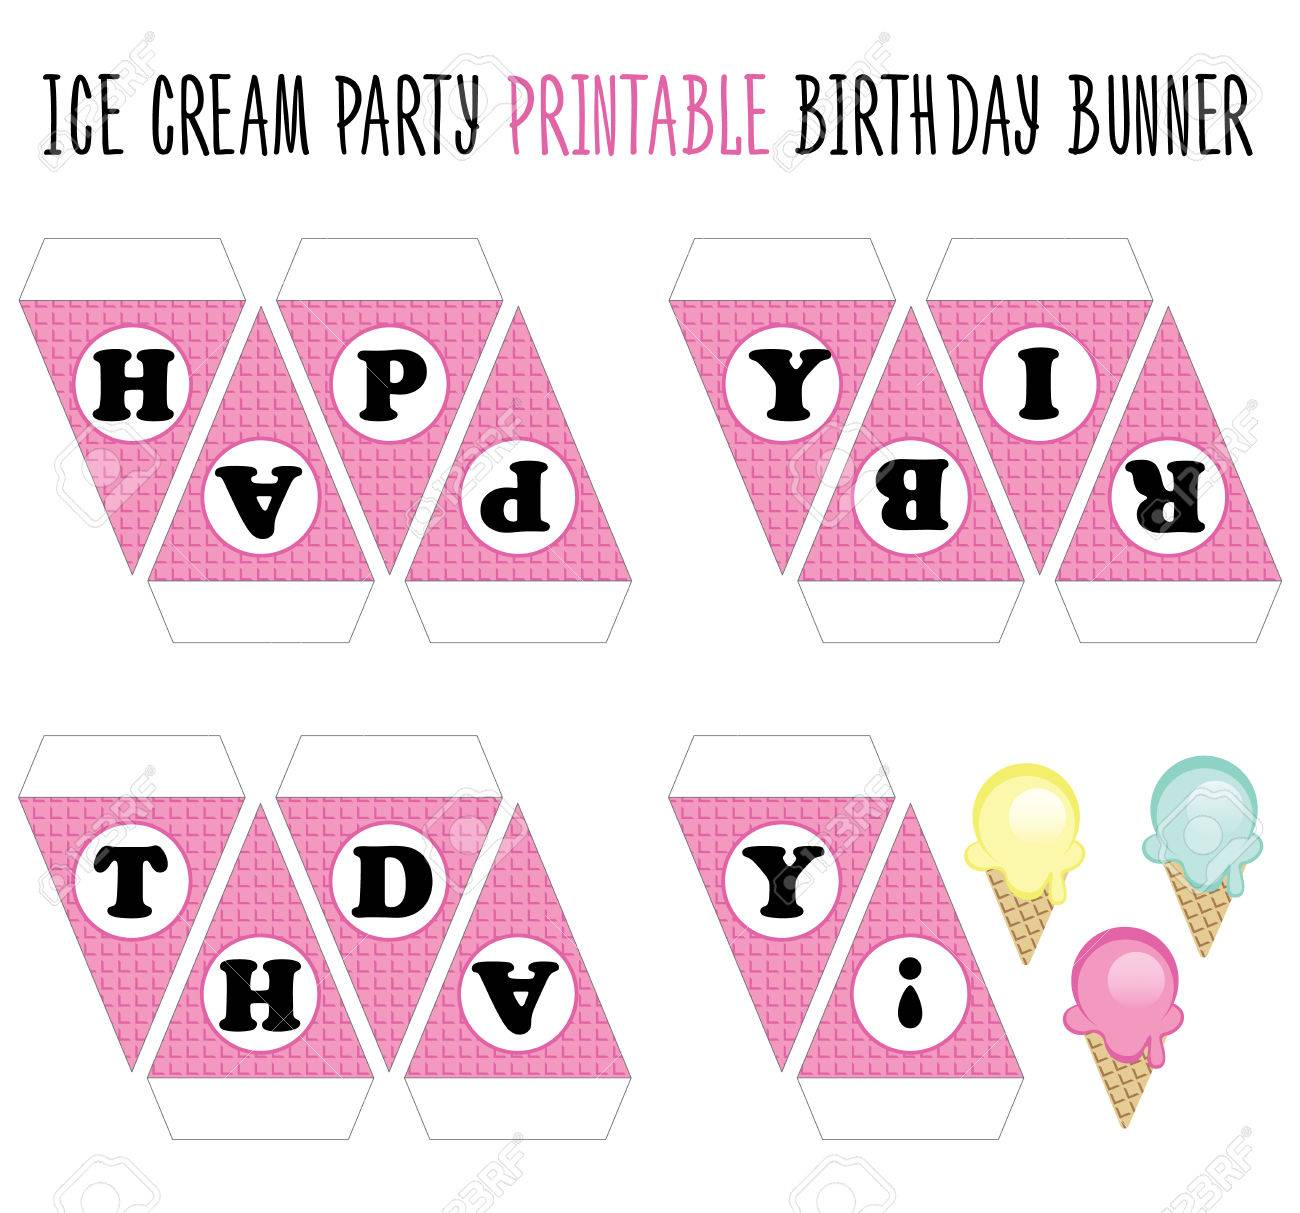 photograph relating to Printable Happy Birthday Banner referred to as Joyful Birthday Banner printable. Minimize. Ice product get together